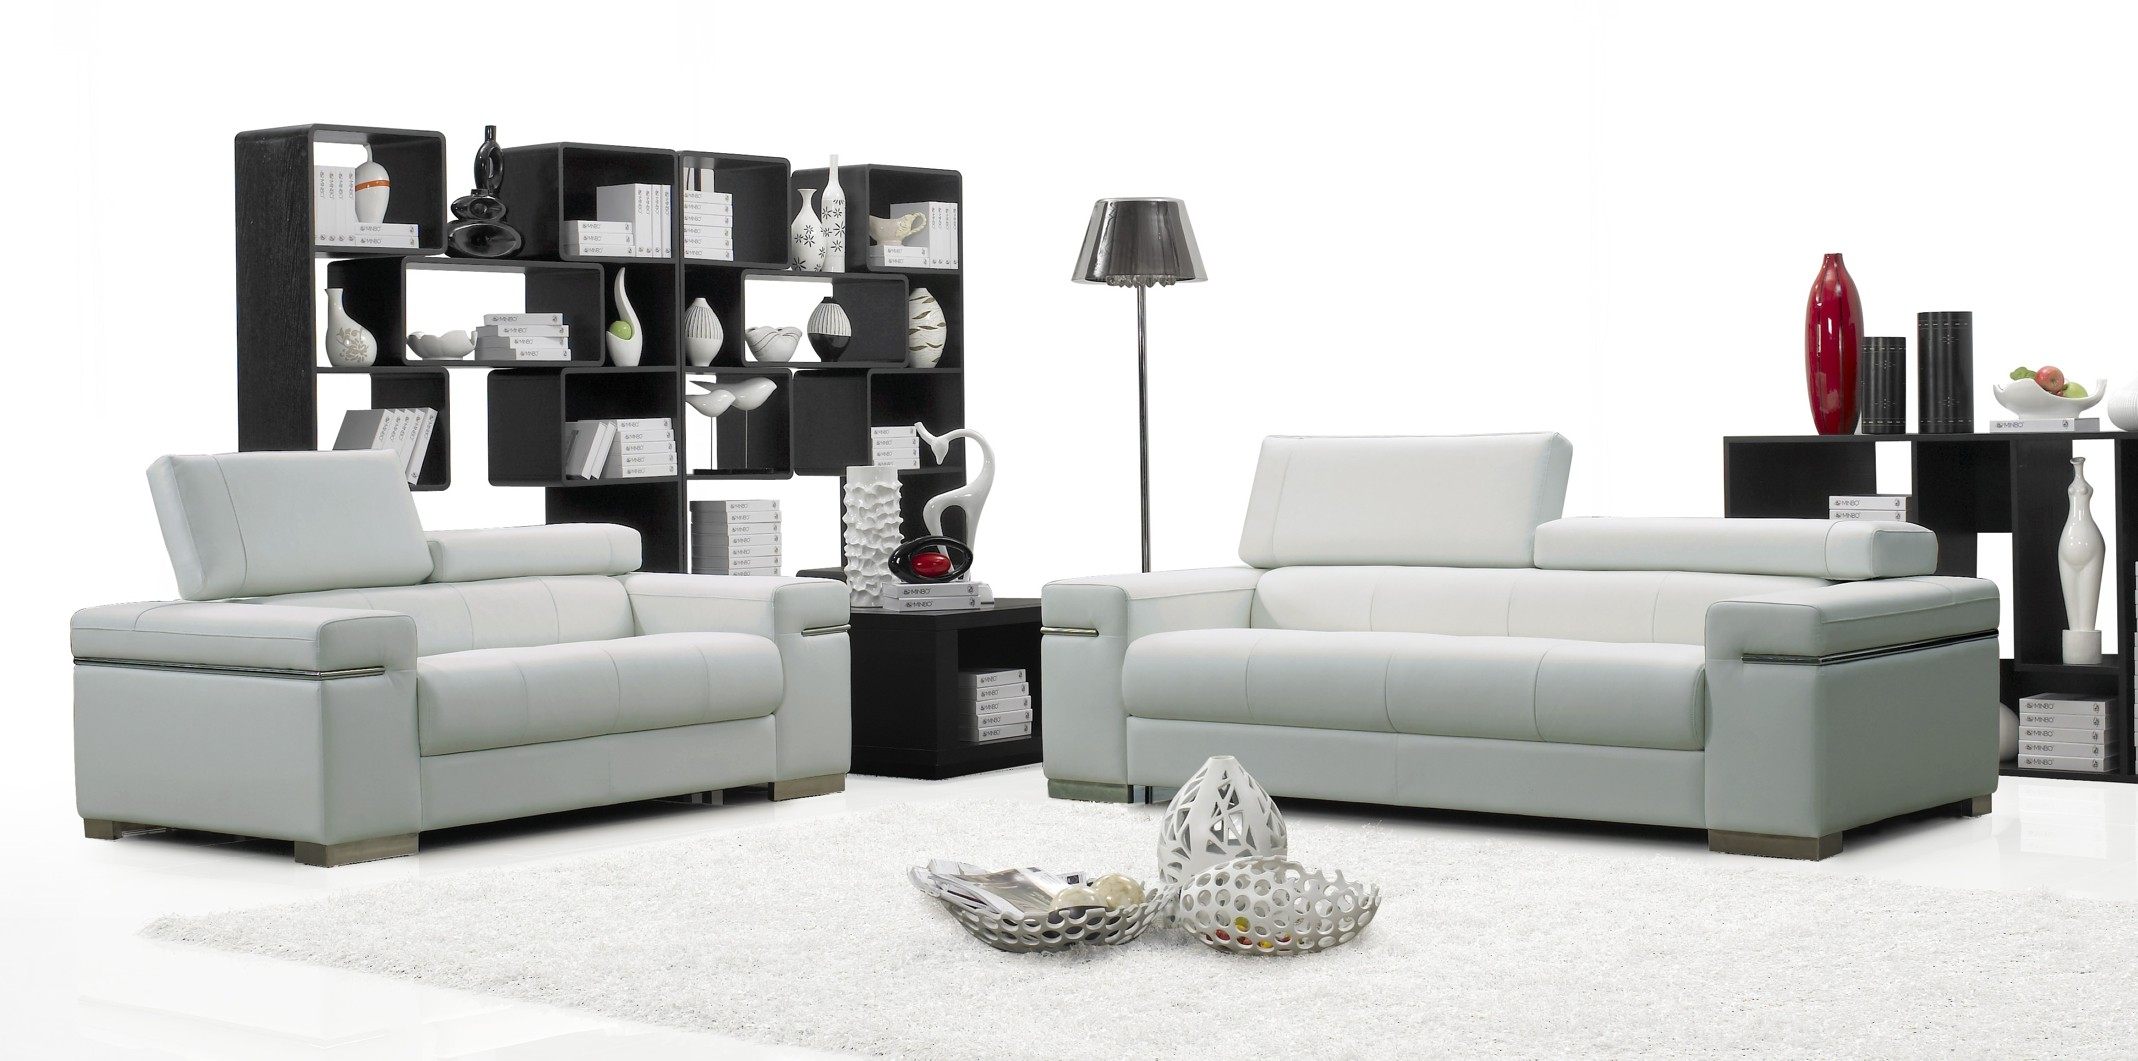 Living Room Design With Settee